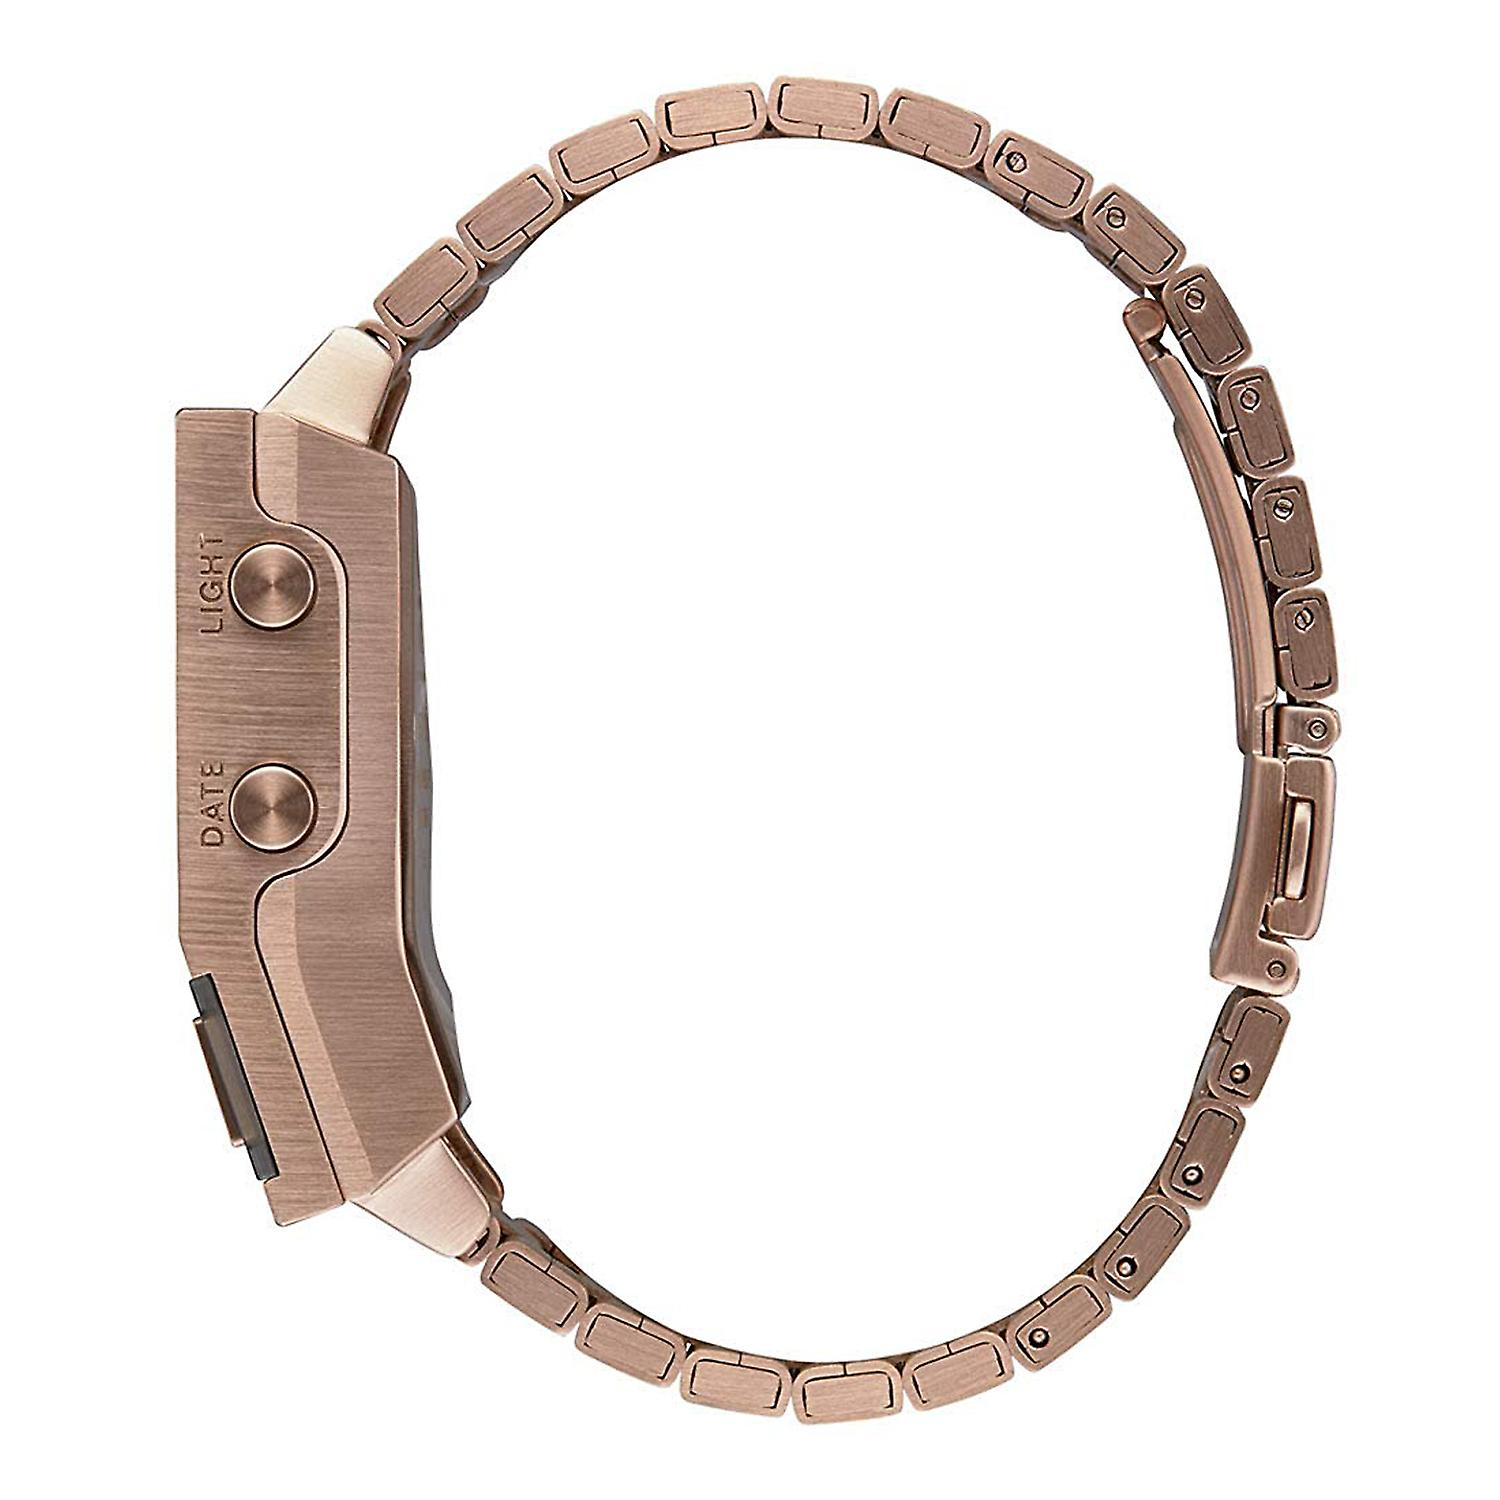 Nixon the dork too Japanese Quartz Digital Man Watch with A1266897 Gold Plated Stainless Steel Bracelet